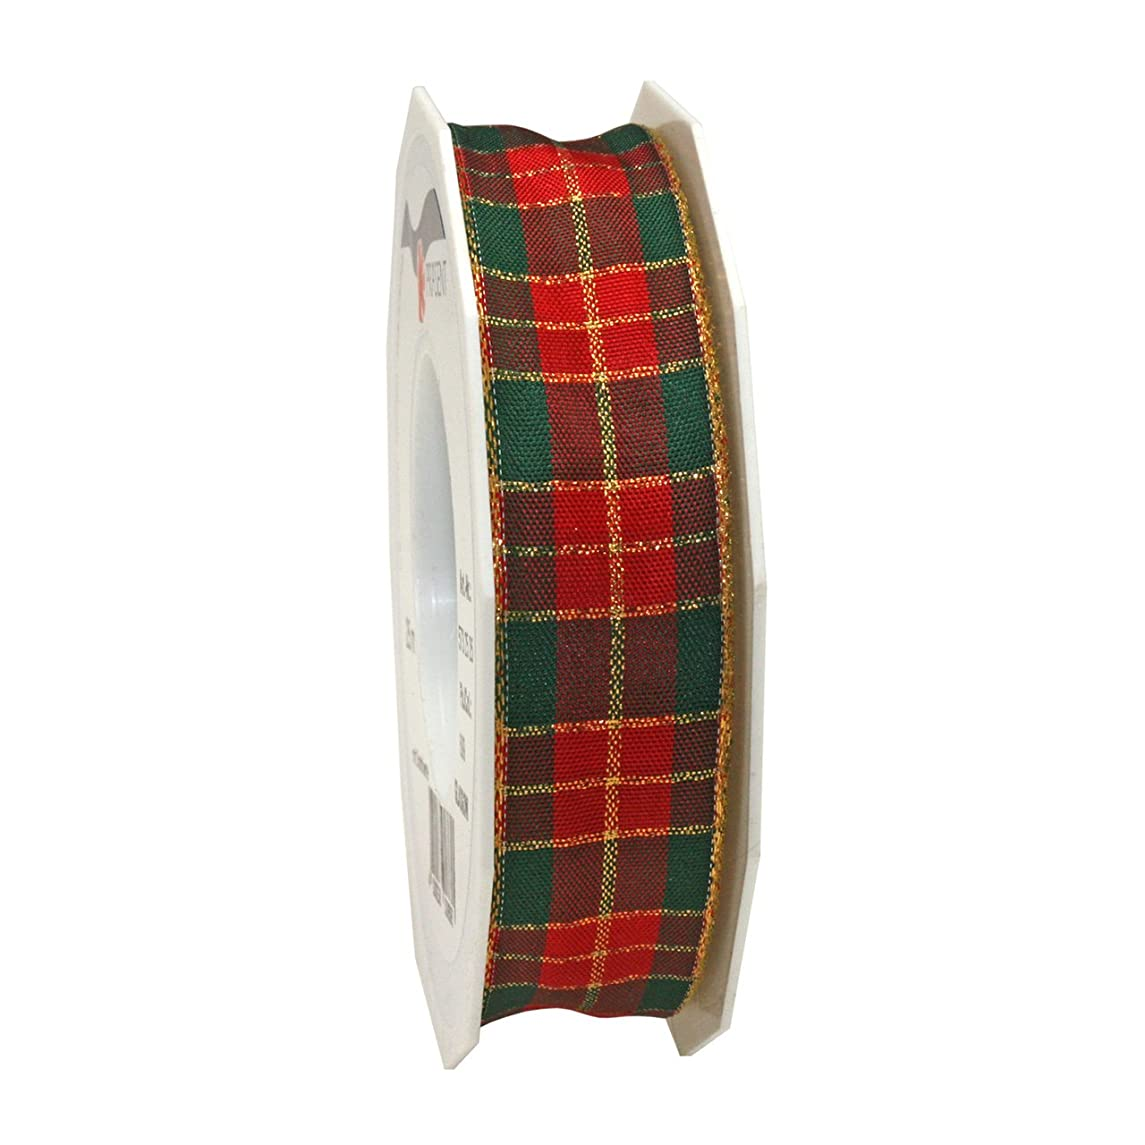 Morex Ribbon 57325/25-609 French Wired Acetate Glasgow Ribbon, 1-Inch by 27-Yard, Red